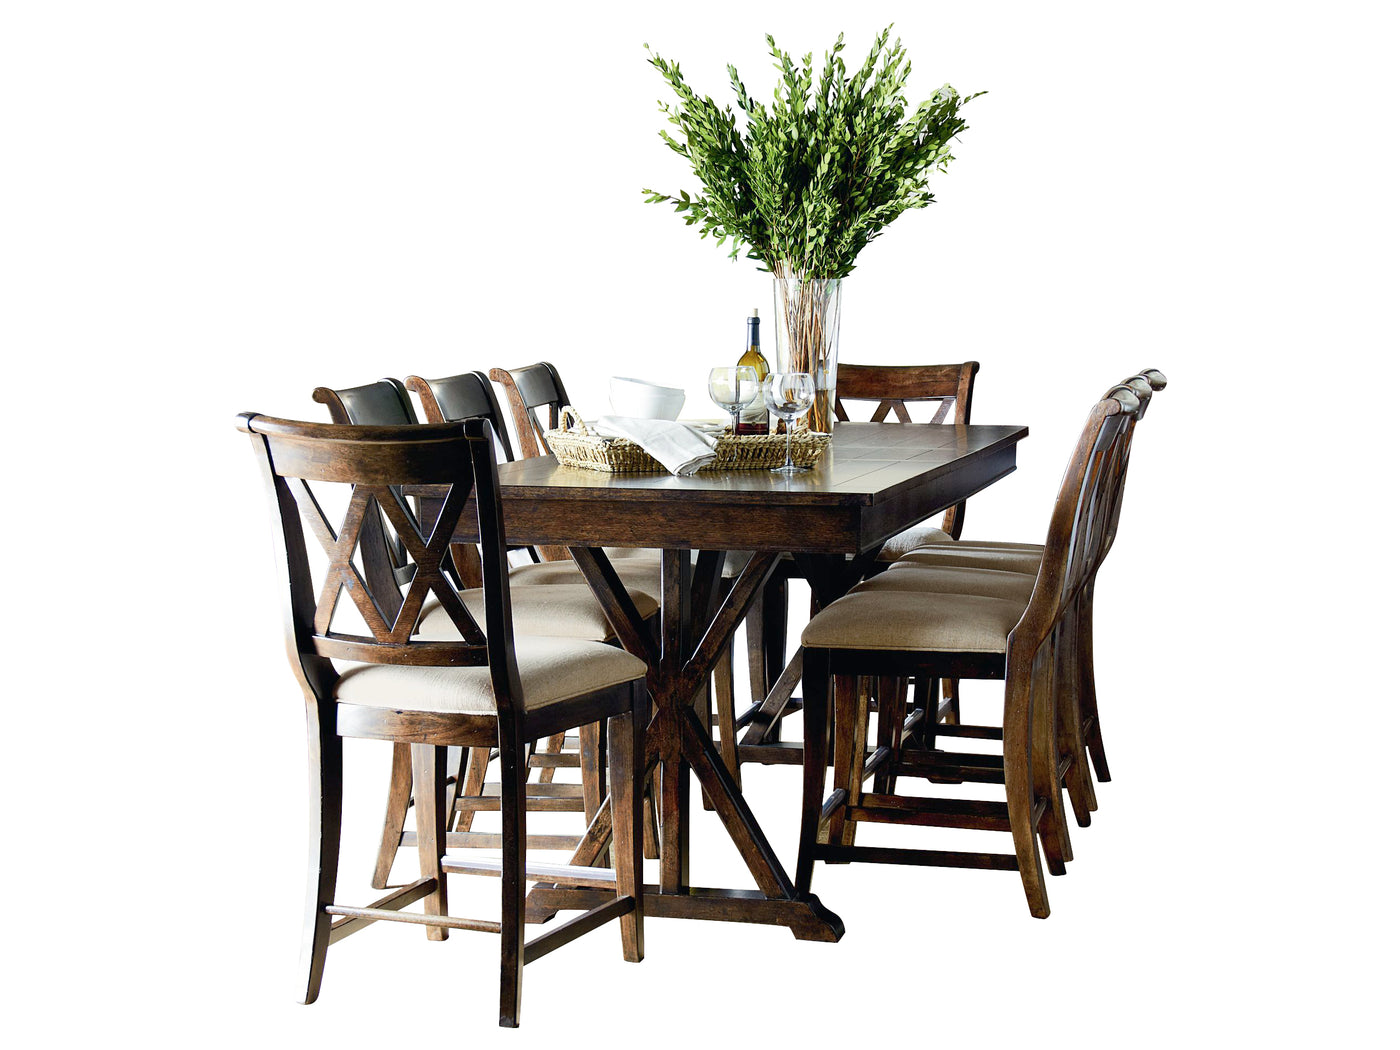 top room chair table modern oak century mid of dining walnut danish for this world out round chairs